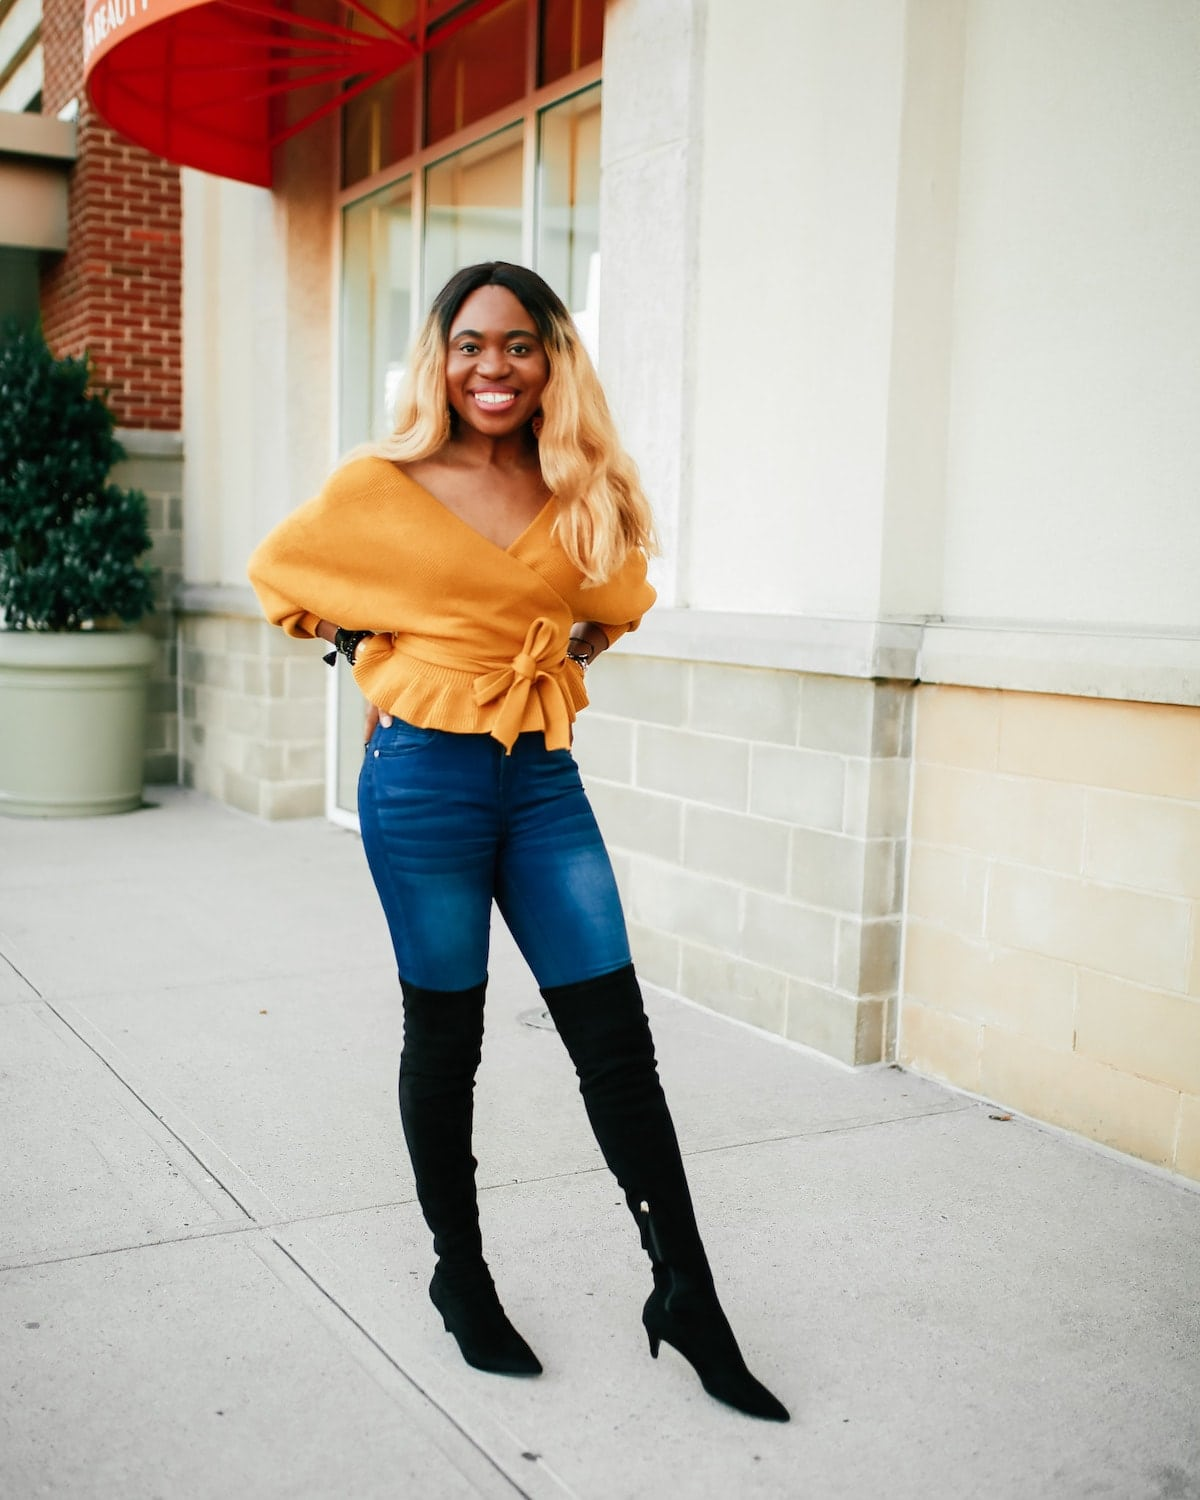 Crushing on this super chic peplum hem sweater outfit paired with high-waist jeans and black suede over the knee boots. No better way to make a statement this season than with a chic, cozy, and comfy open back wrap sweater that's under $30 and available on Amazon Prime. #otkboots #bootsforwomen